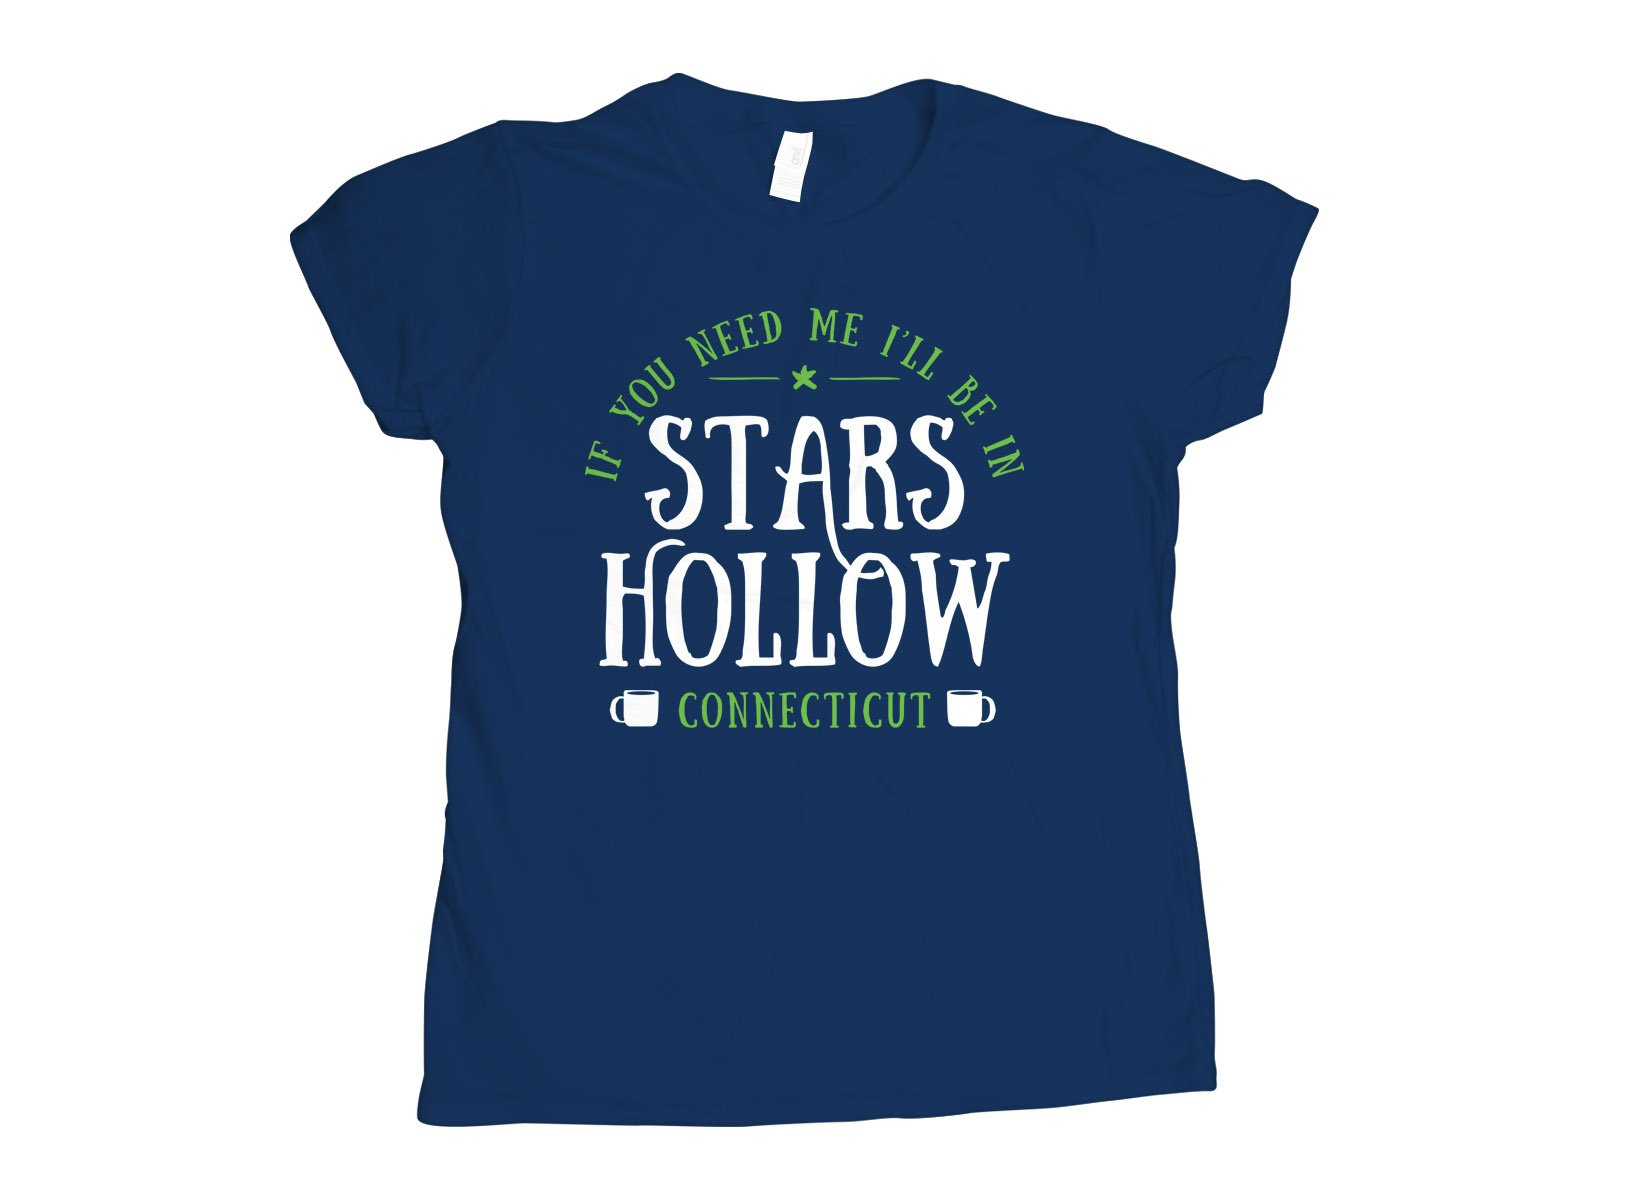 Stars Hollow on Womens T-Shirt